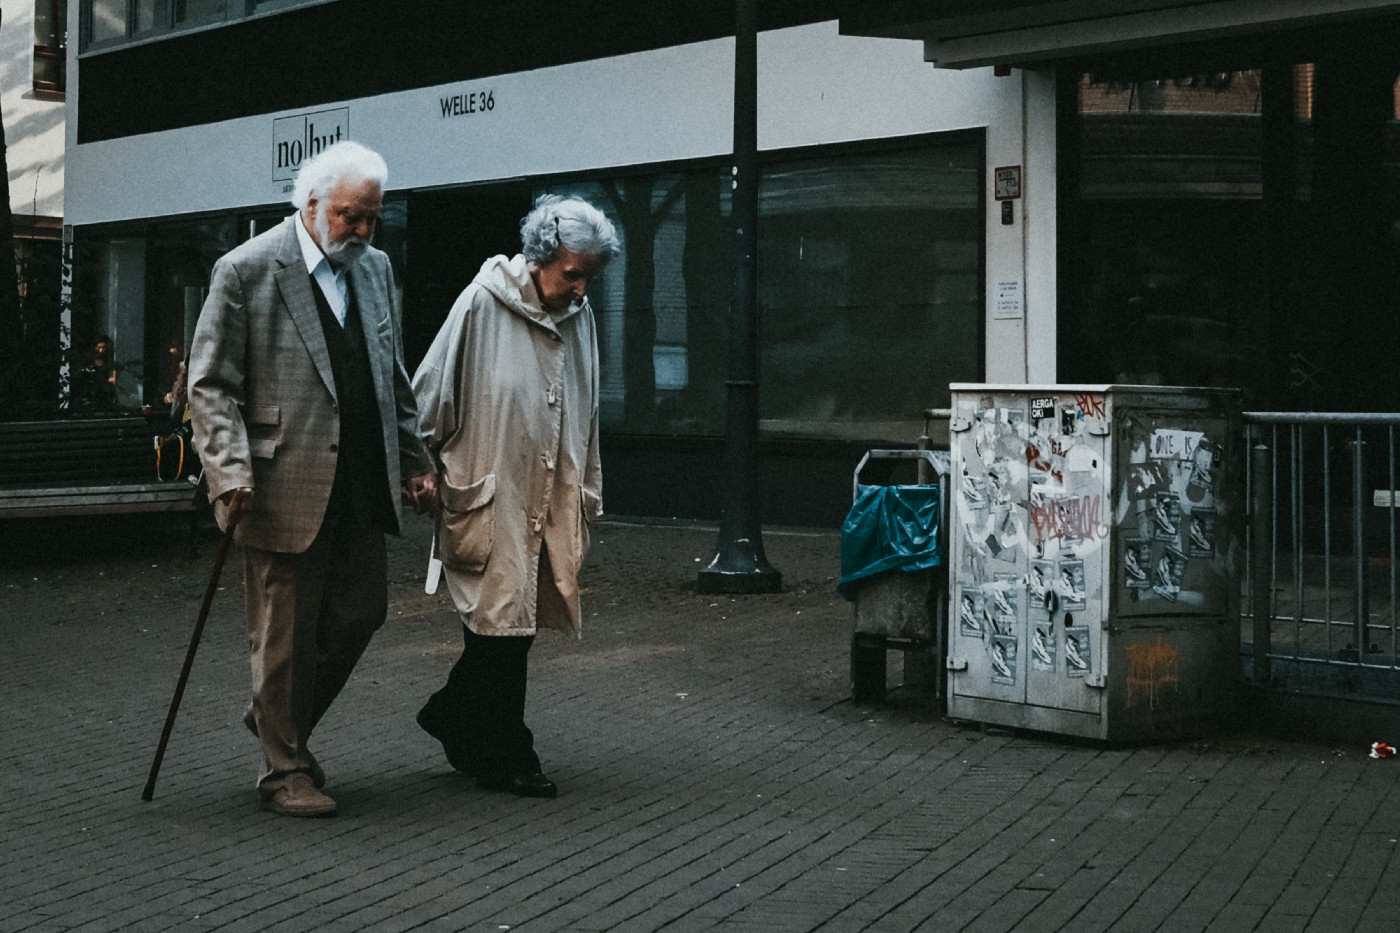 An elderly couple walk along a city street. They are both looking down. The man has a cane.